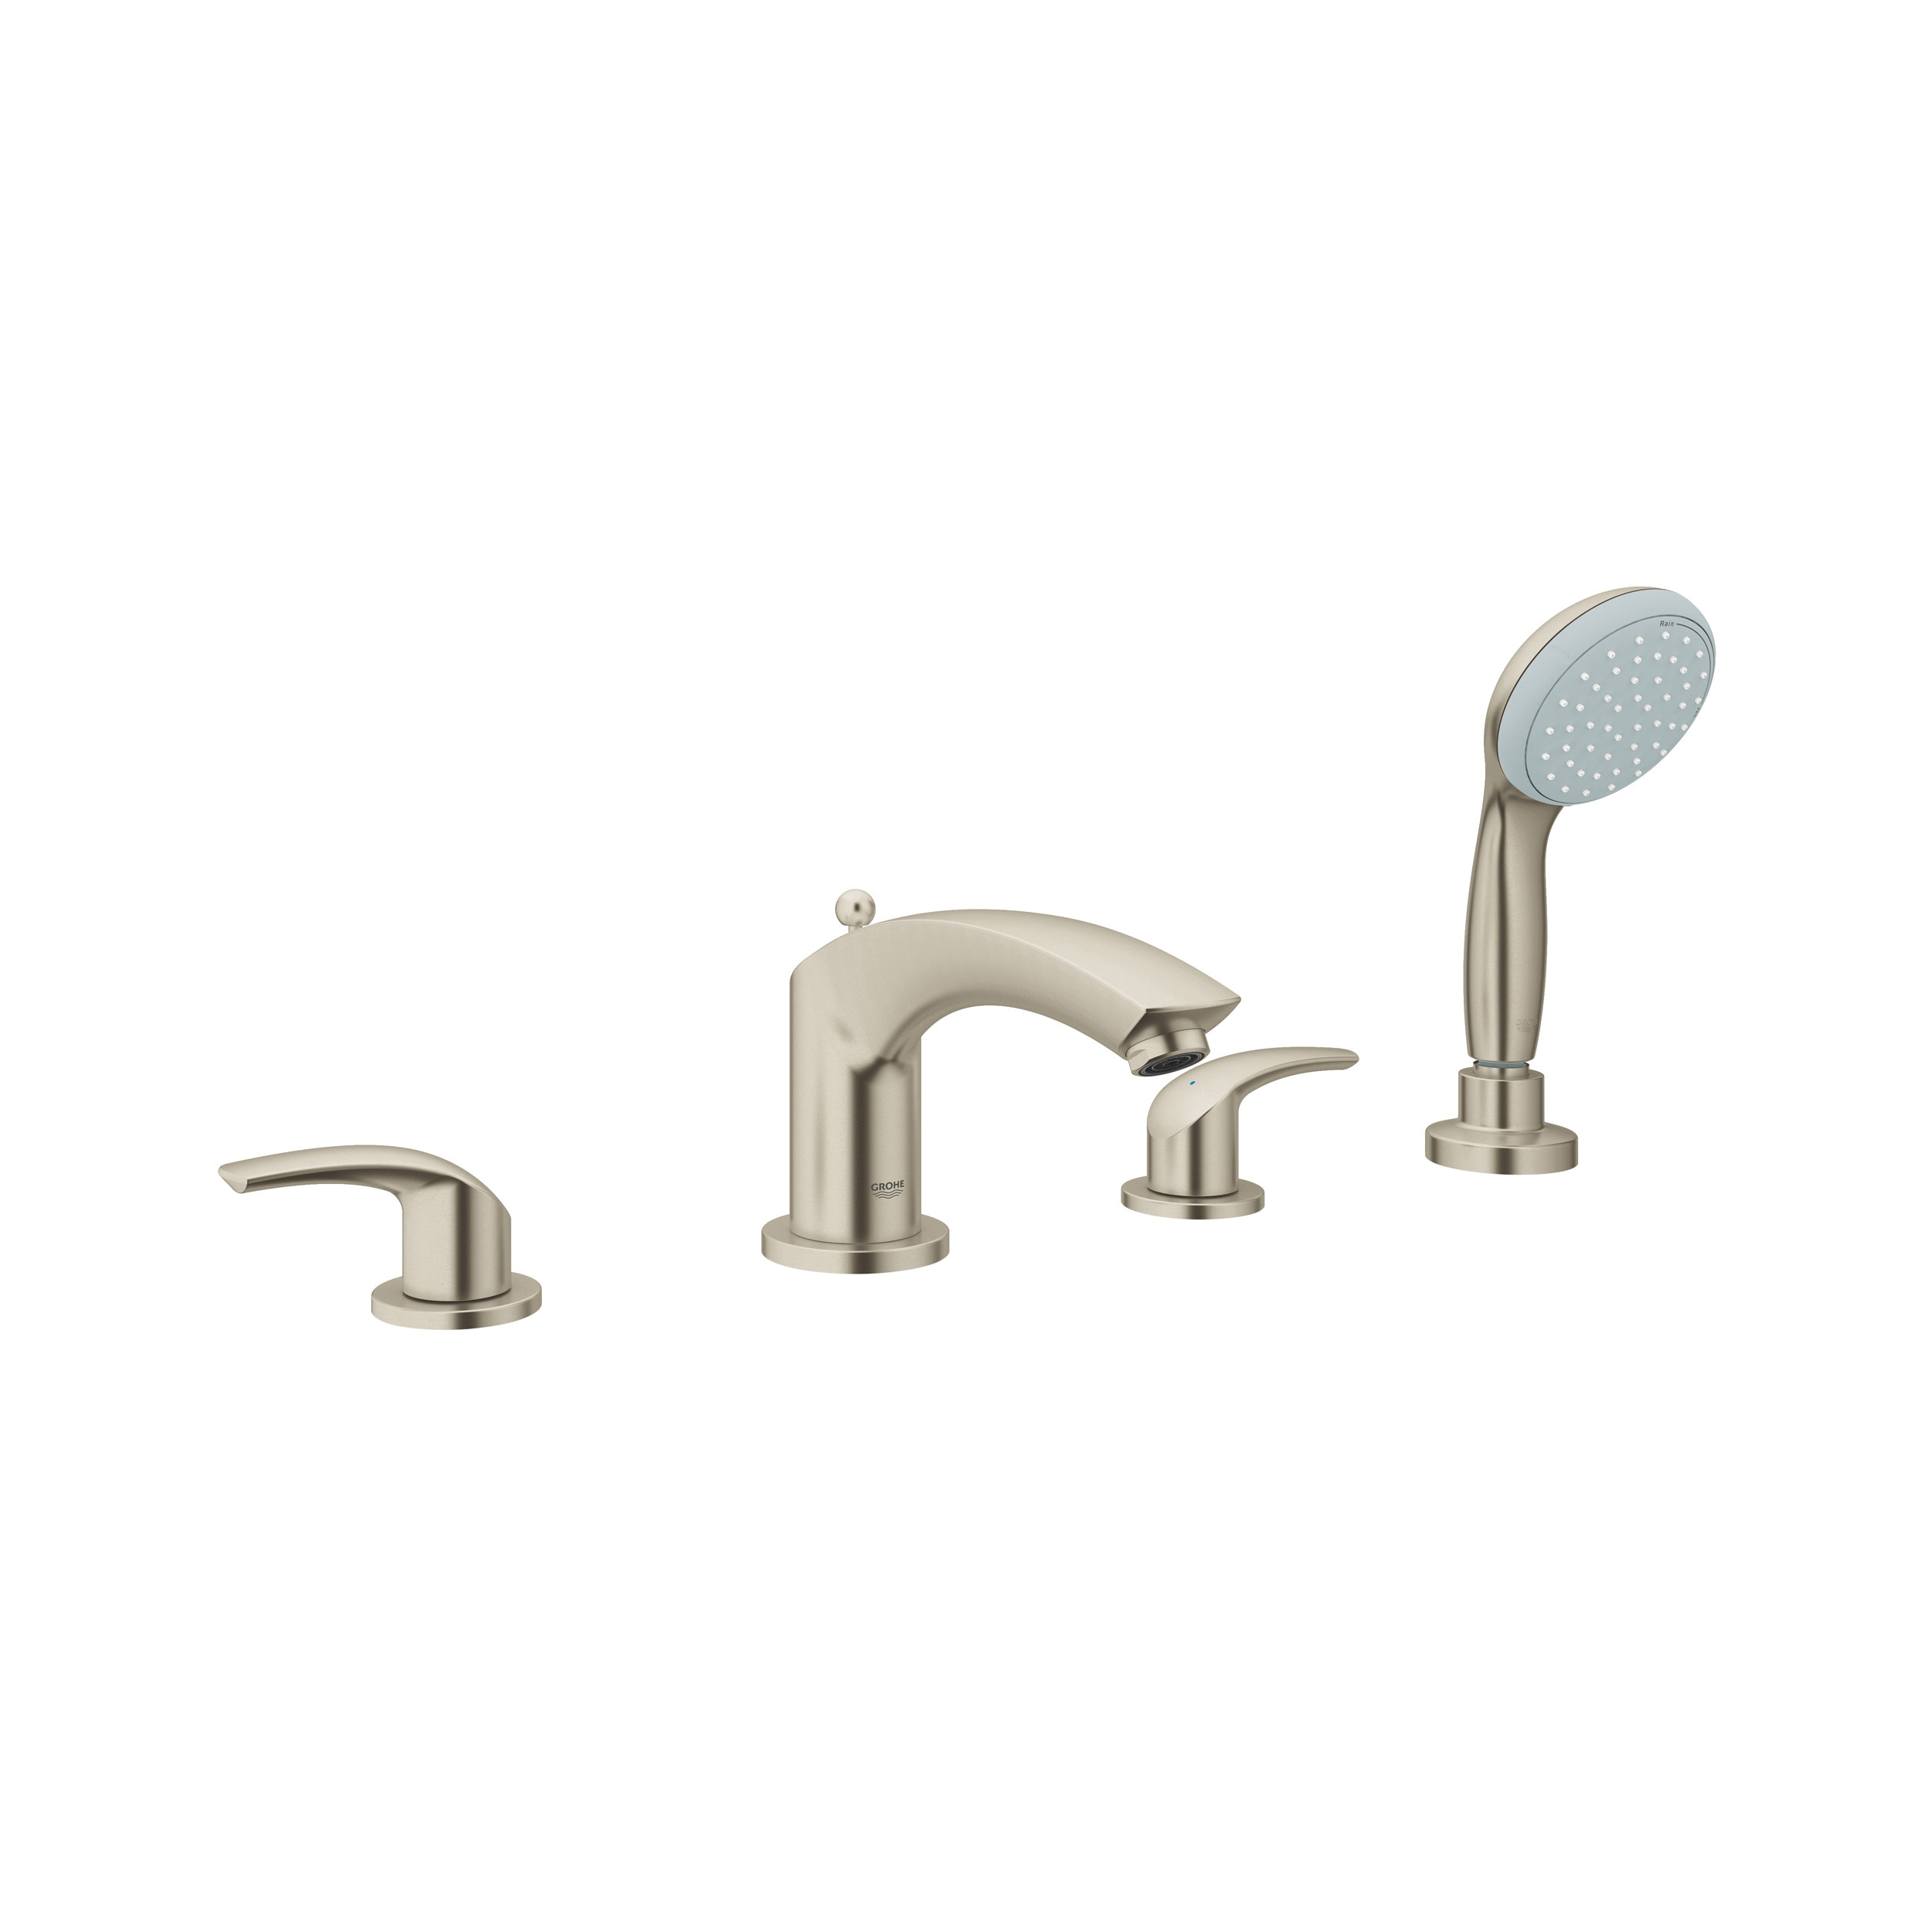 Consolidated Supply Co Grohe 25170en2 Eurosmart Roman